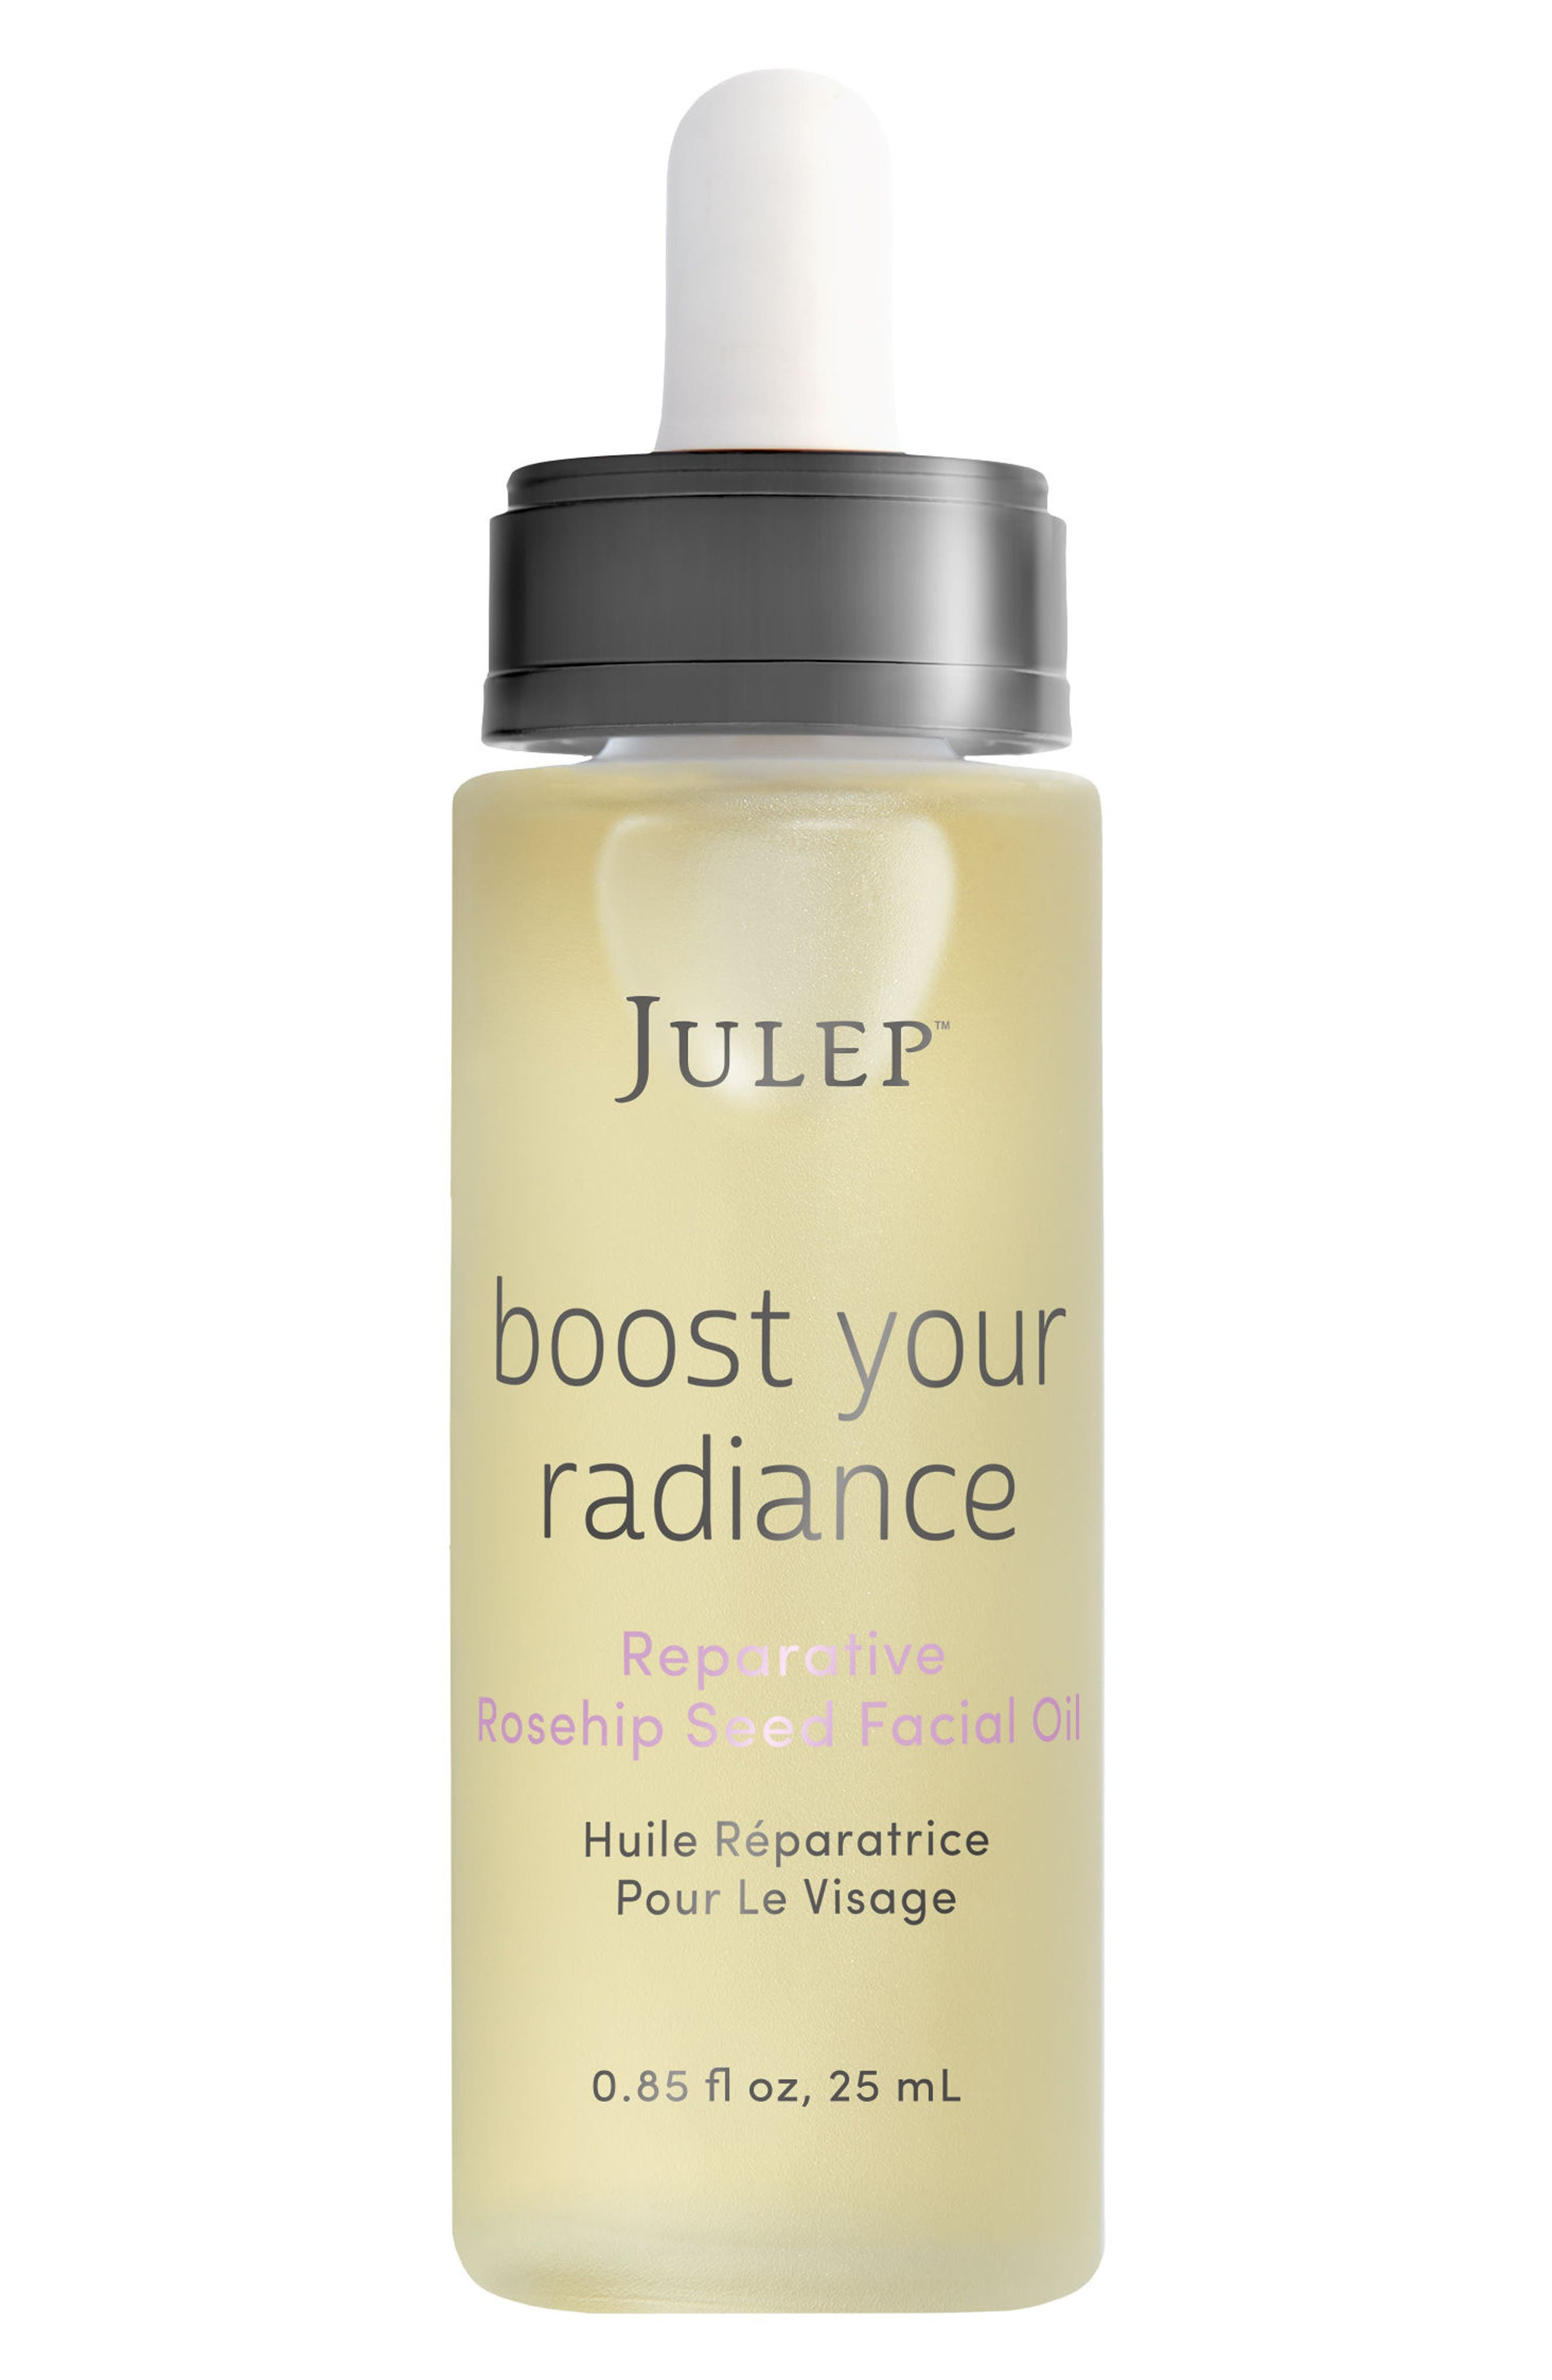 Julep™ Boost Your Radiance Reparative Rosehip Seed Facial Oil